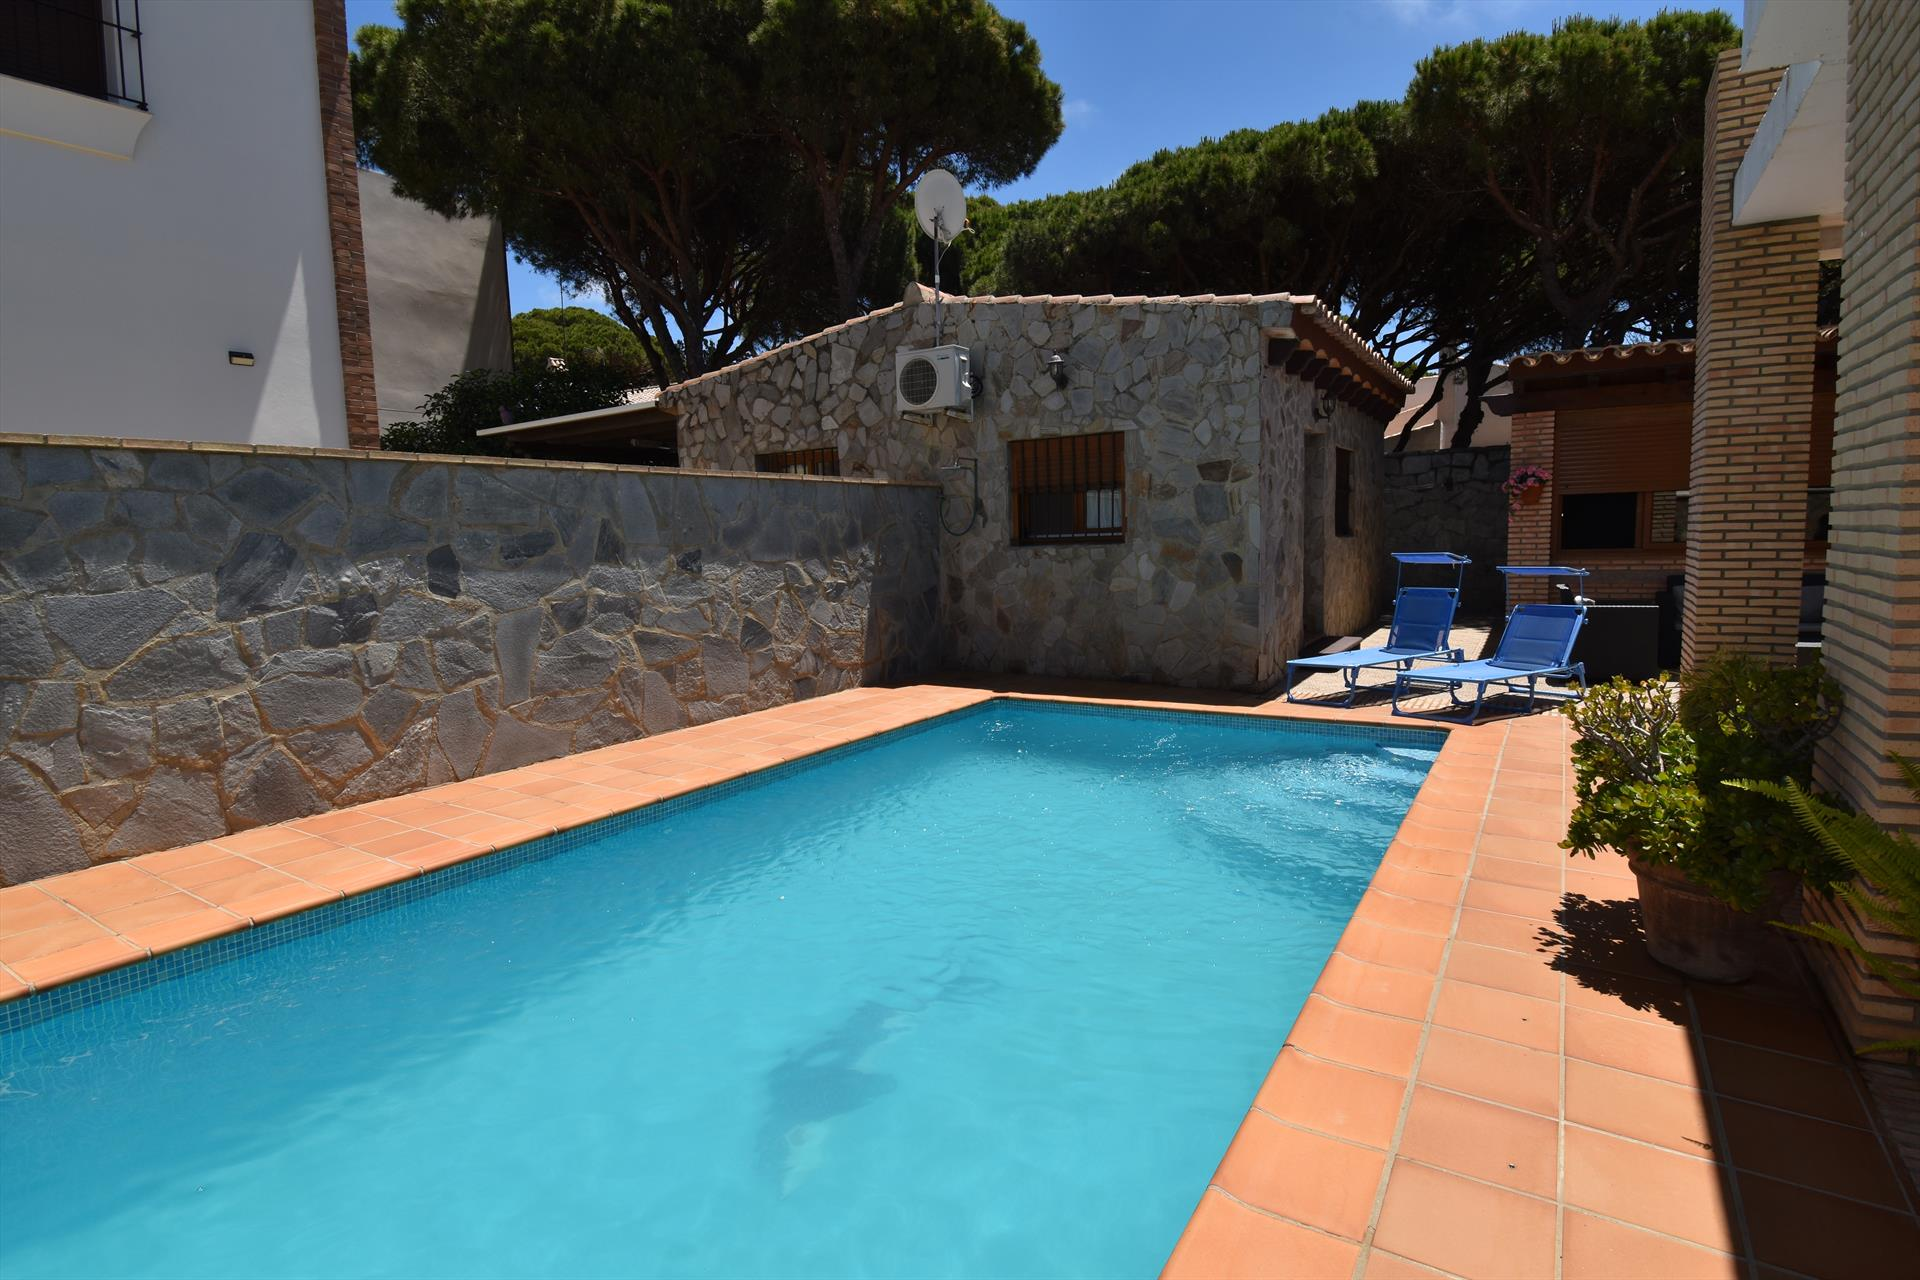 La Barrosa 147, Villa  with private pool in Chiclana de la Frontera, Andalusia, Spain for 4 persons.....